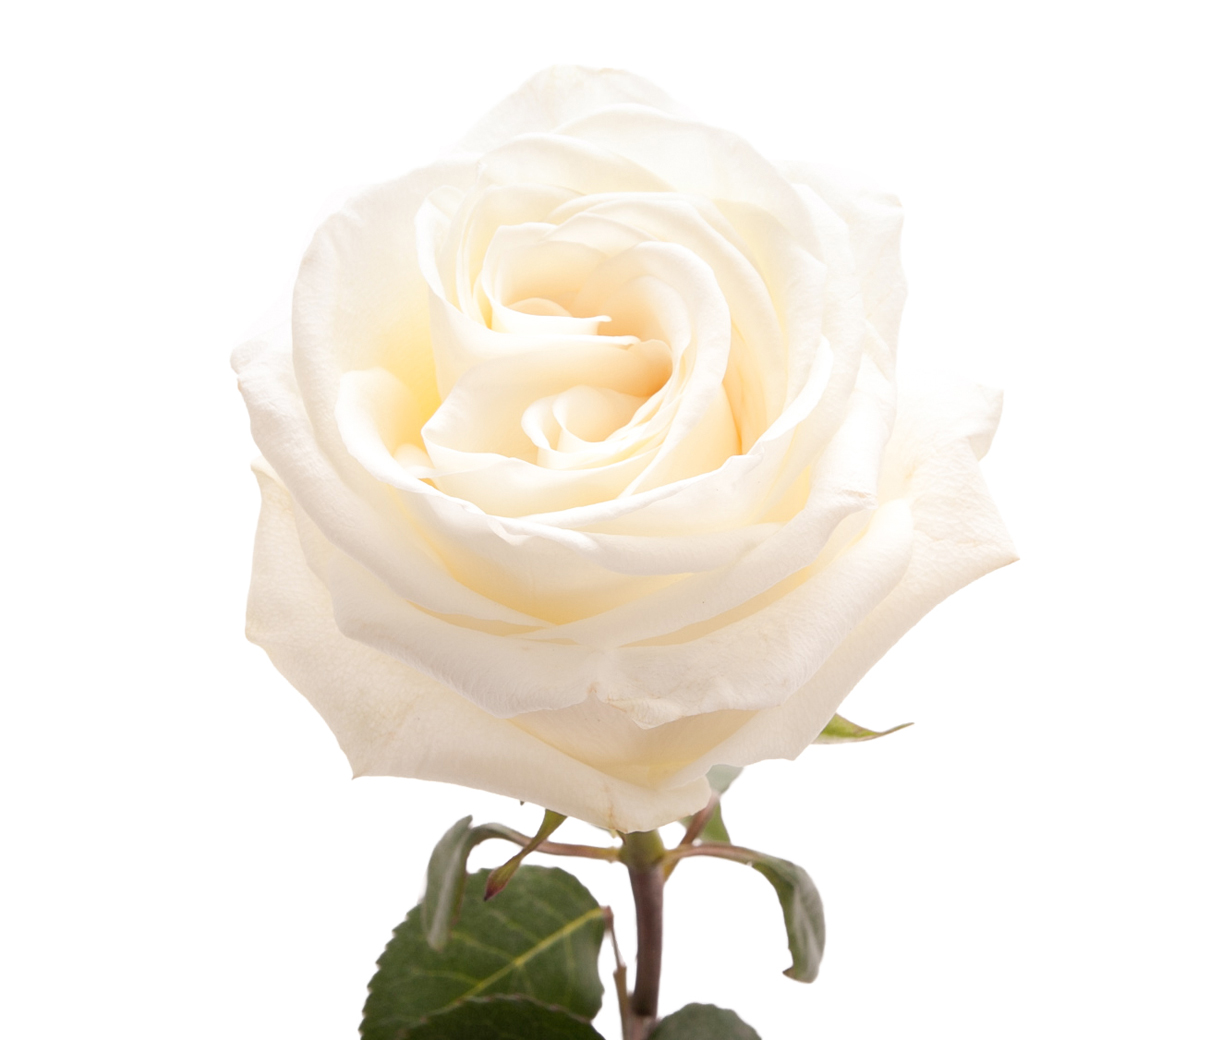 White: purity, new beginnings, remembrance